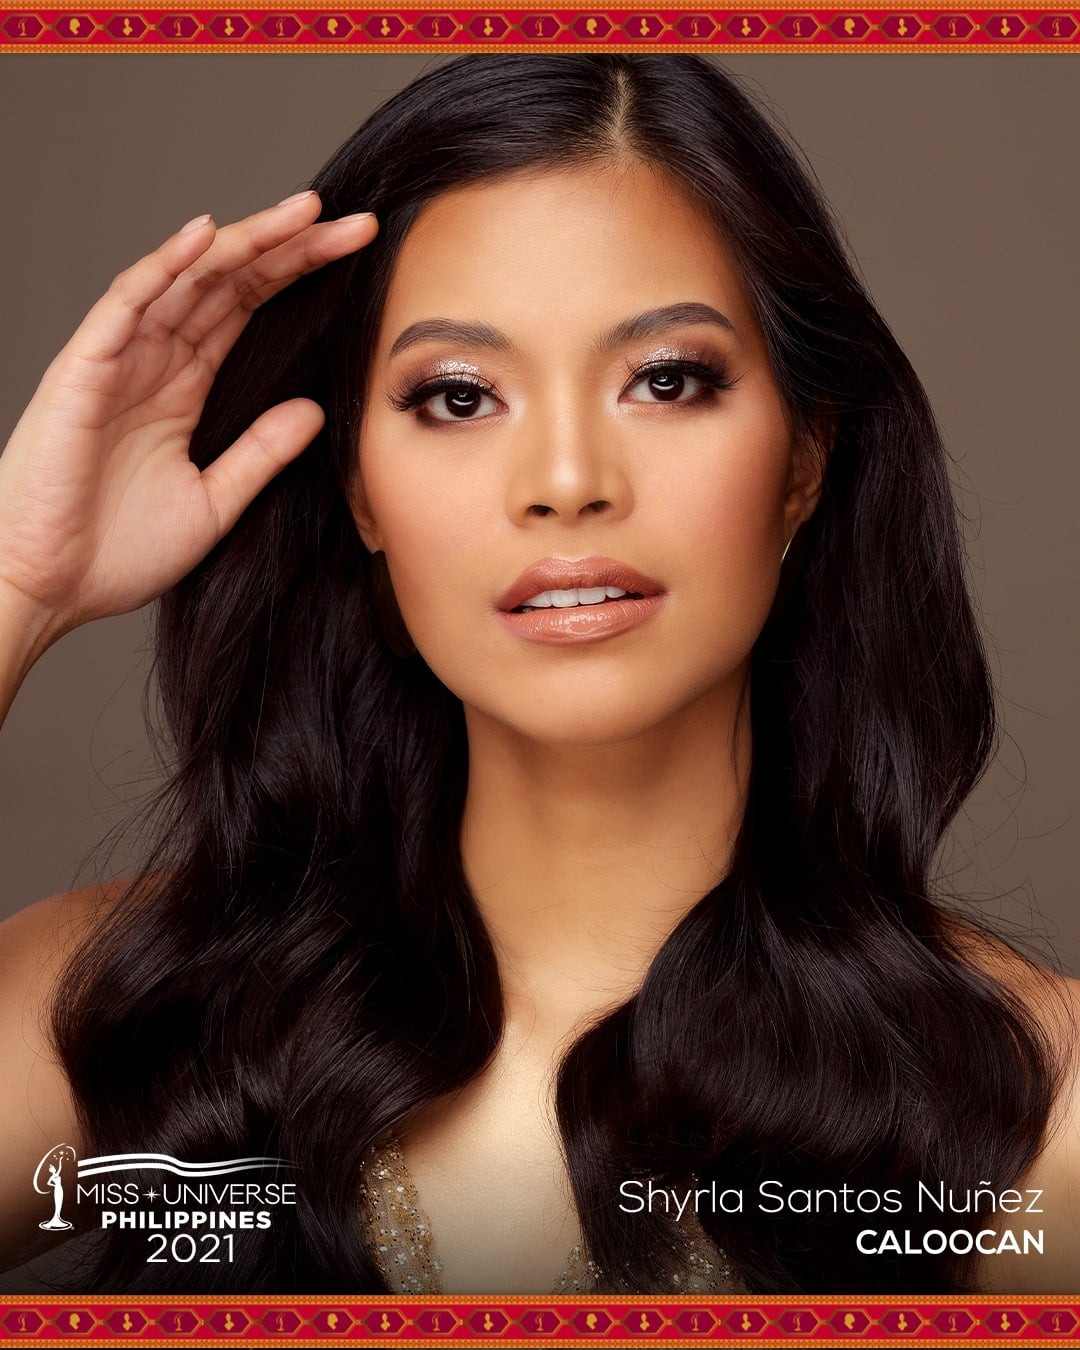 50 pre-candidatas a miss universe philippines 2021. RE3nEP